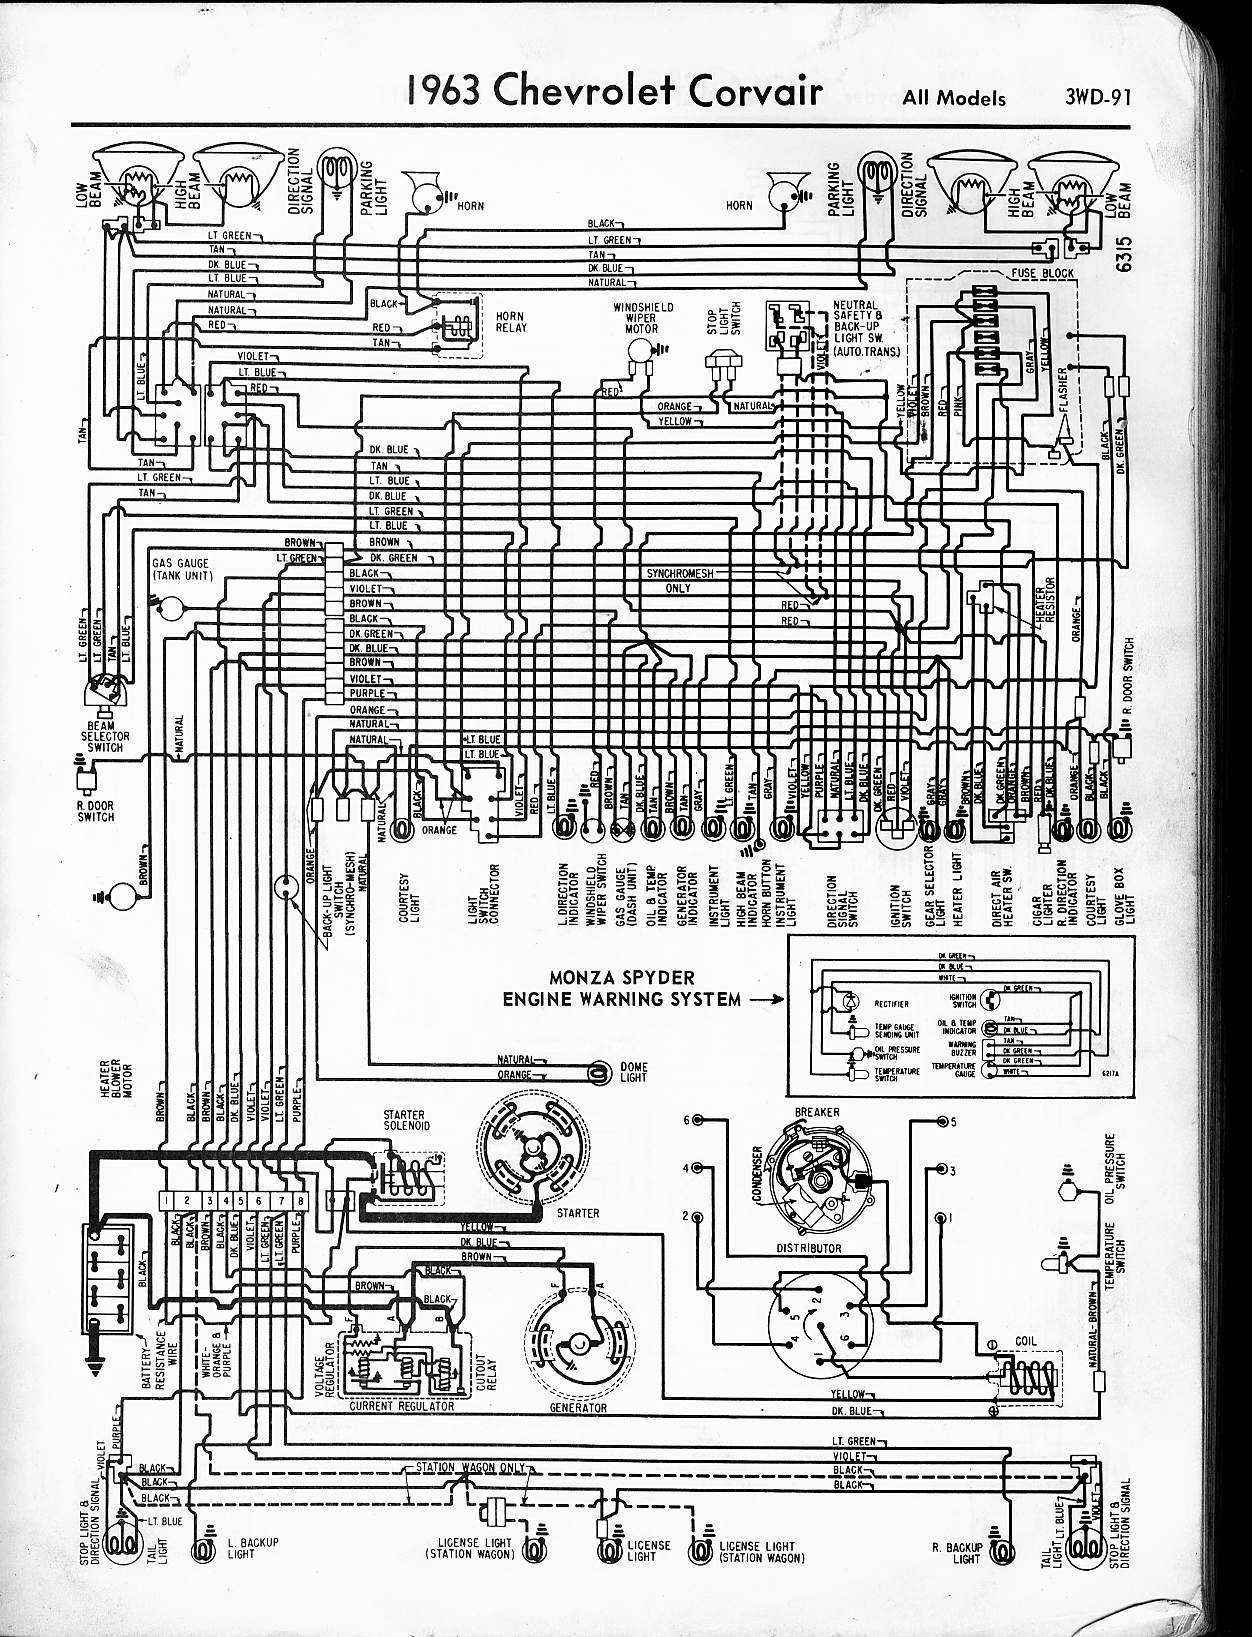 63 nova wiring diagram wiring library57 65 chevy wiring diagrams 63 chevy alternator wiring diagram 63 chevy wiring diagram